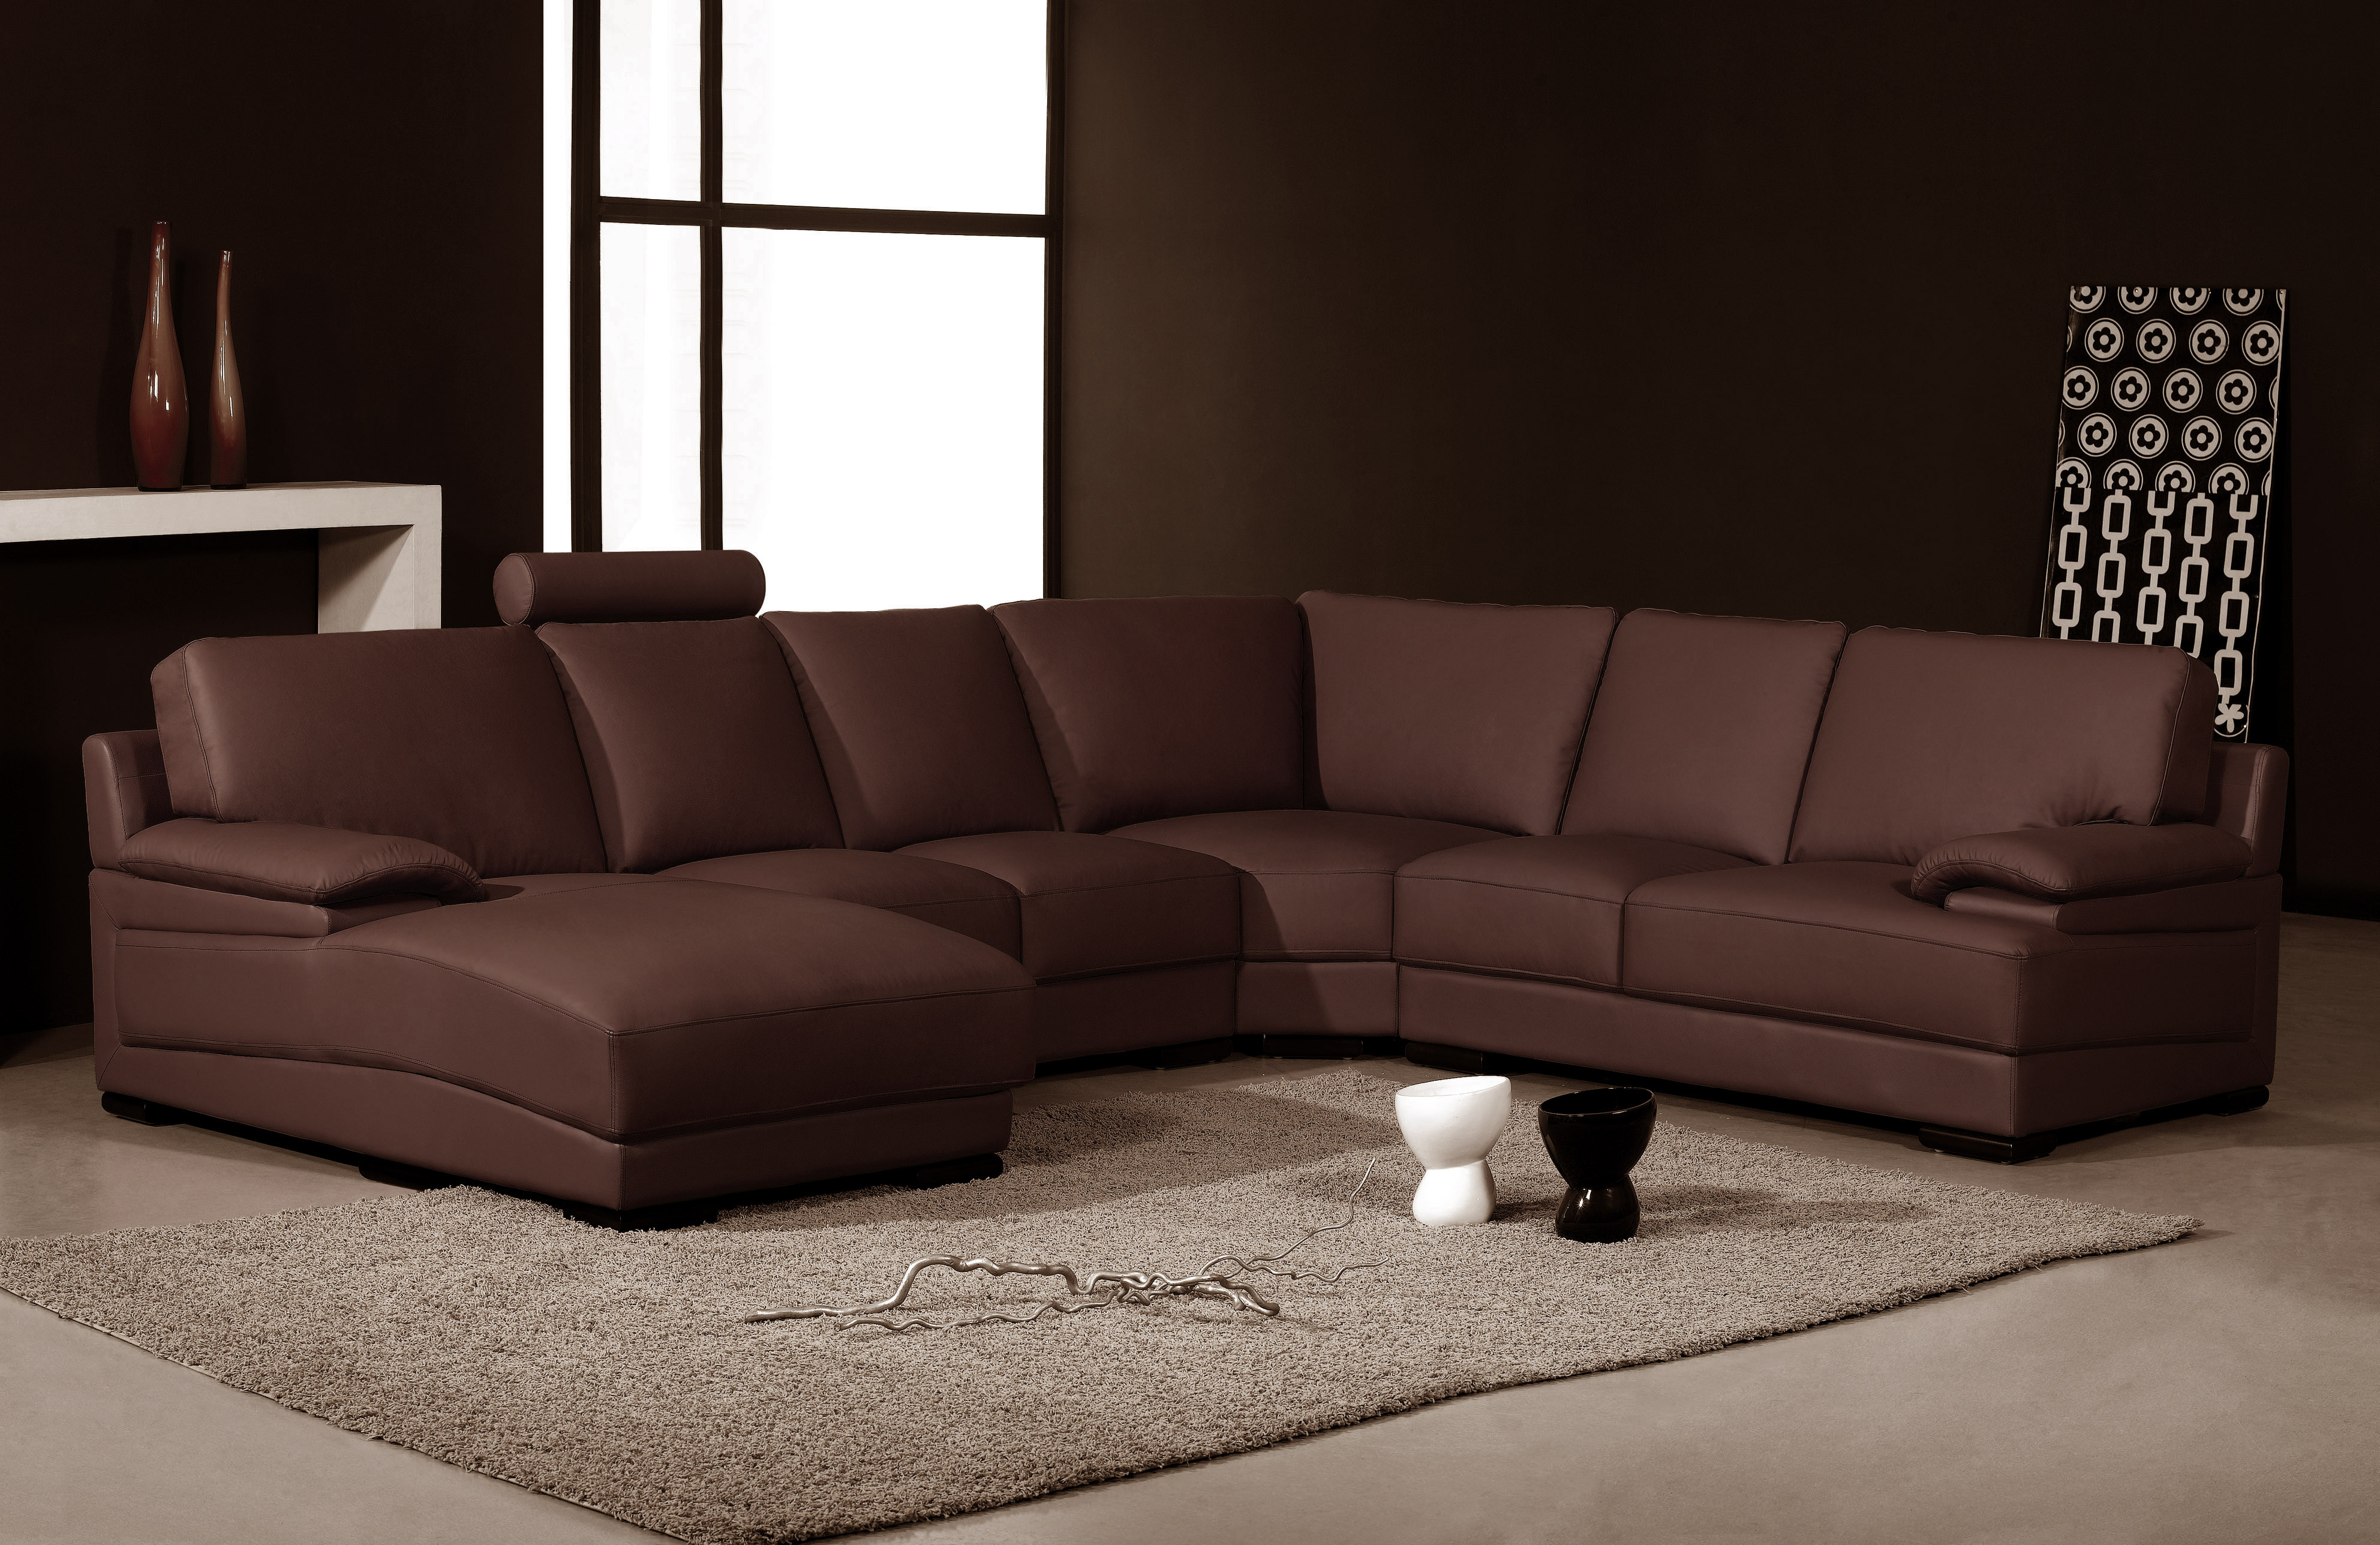 leather couch sectional brown photo - 2